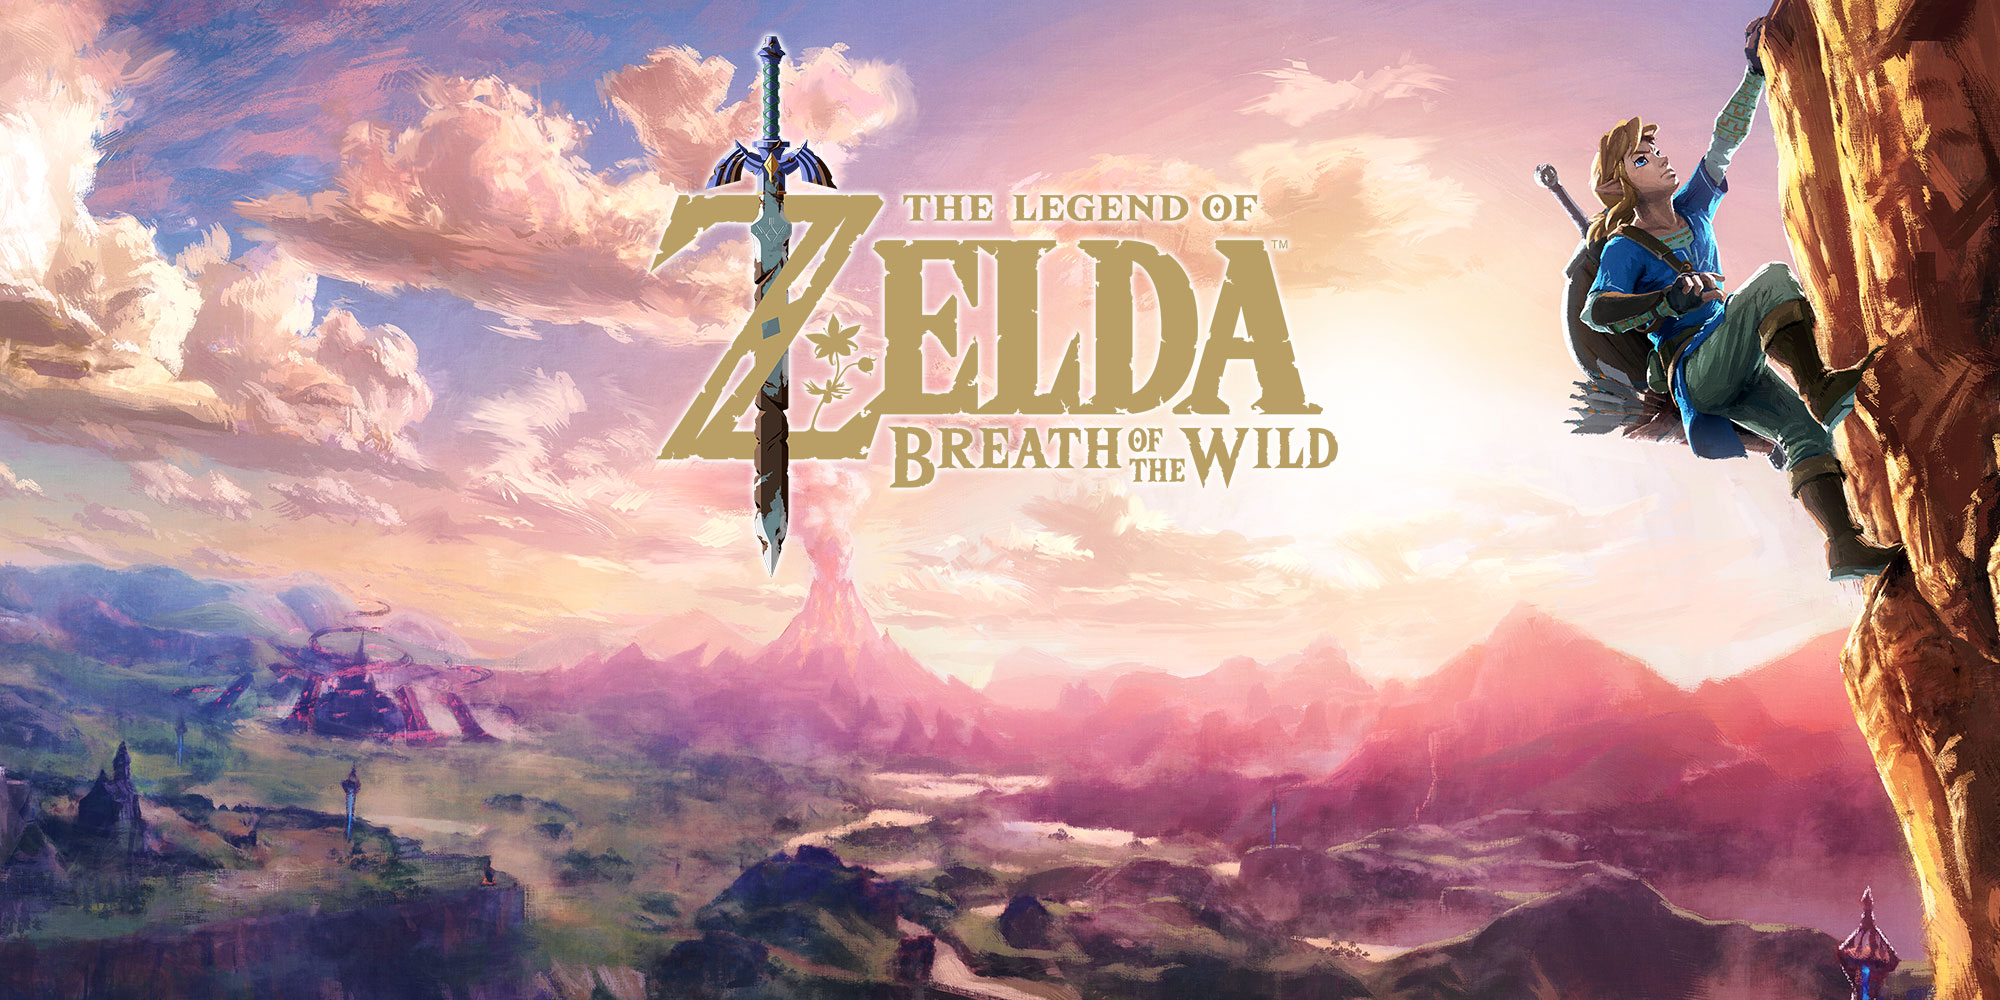 Der neueste Titel der The Legend of Zelda-Serie